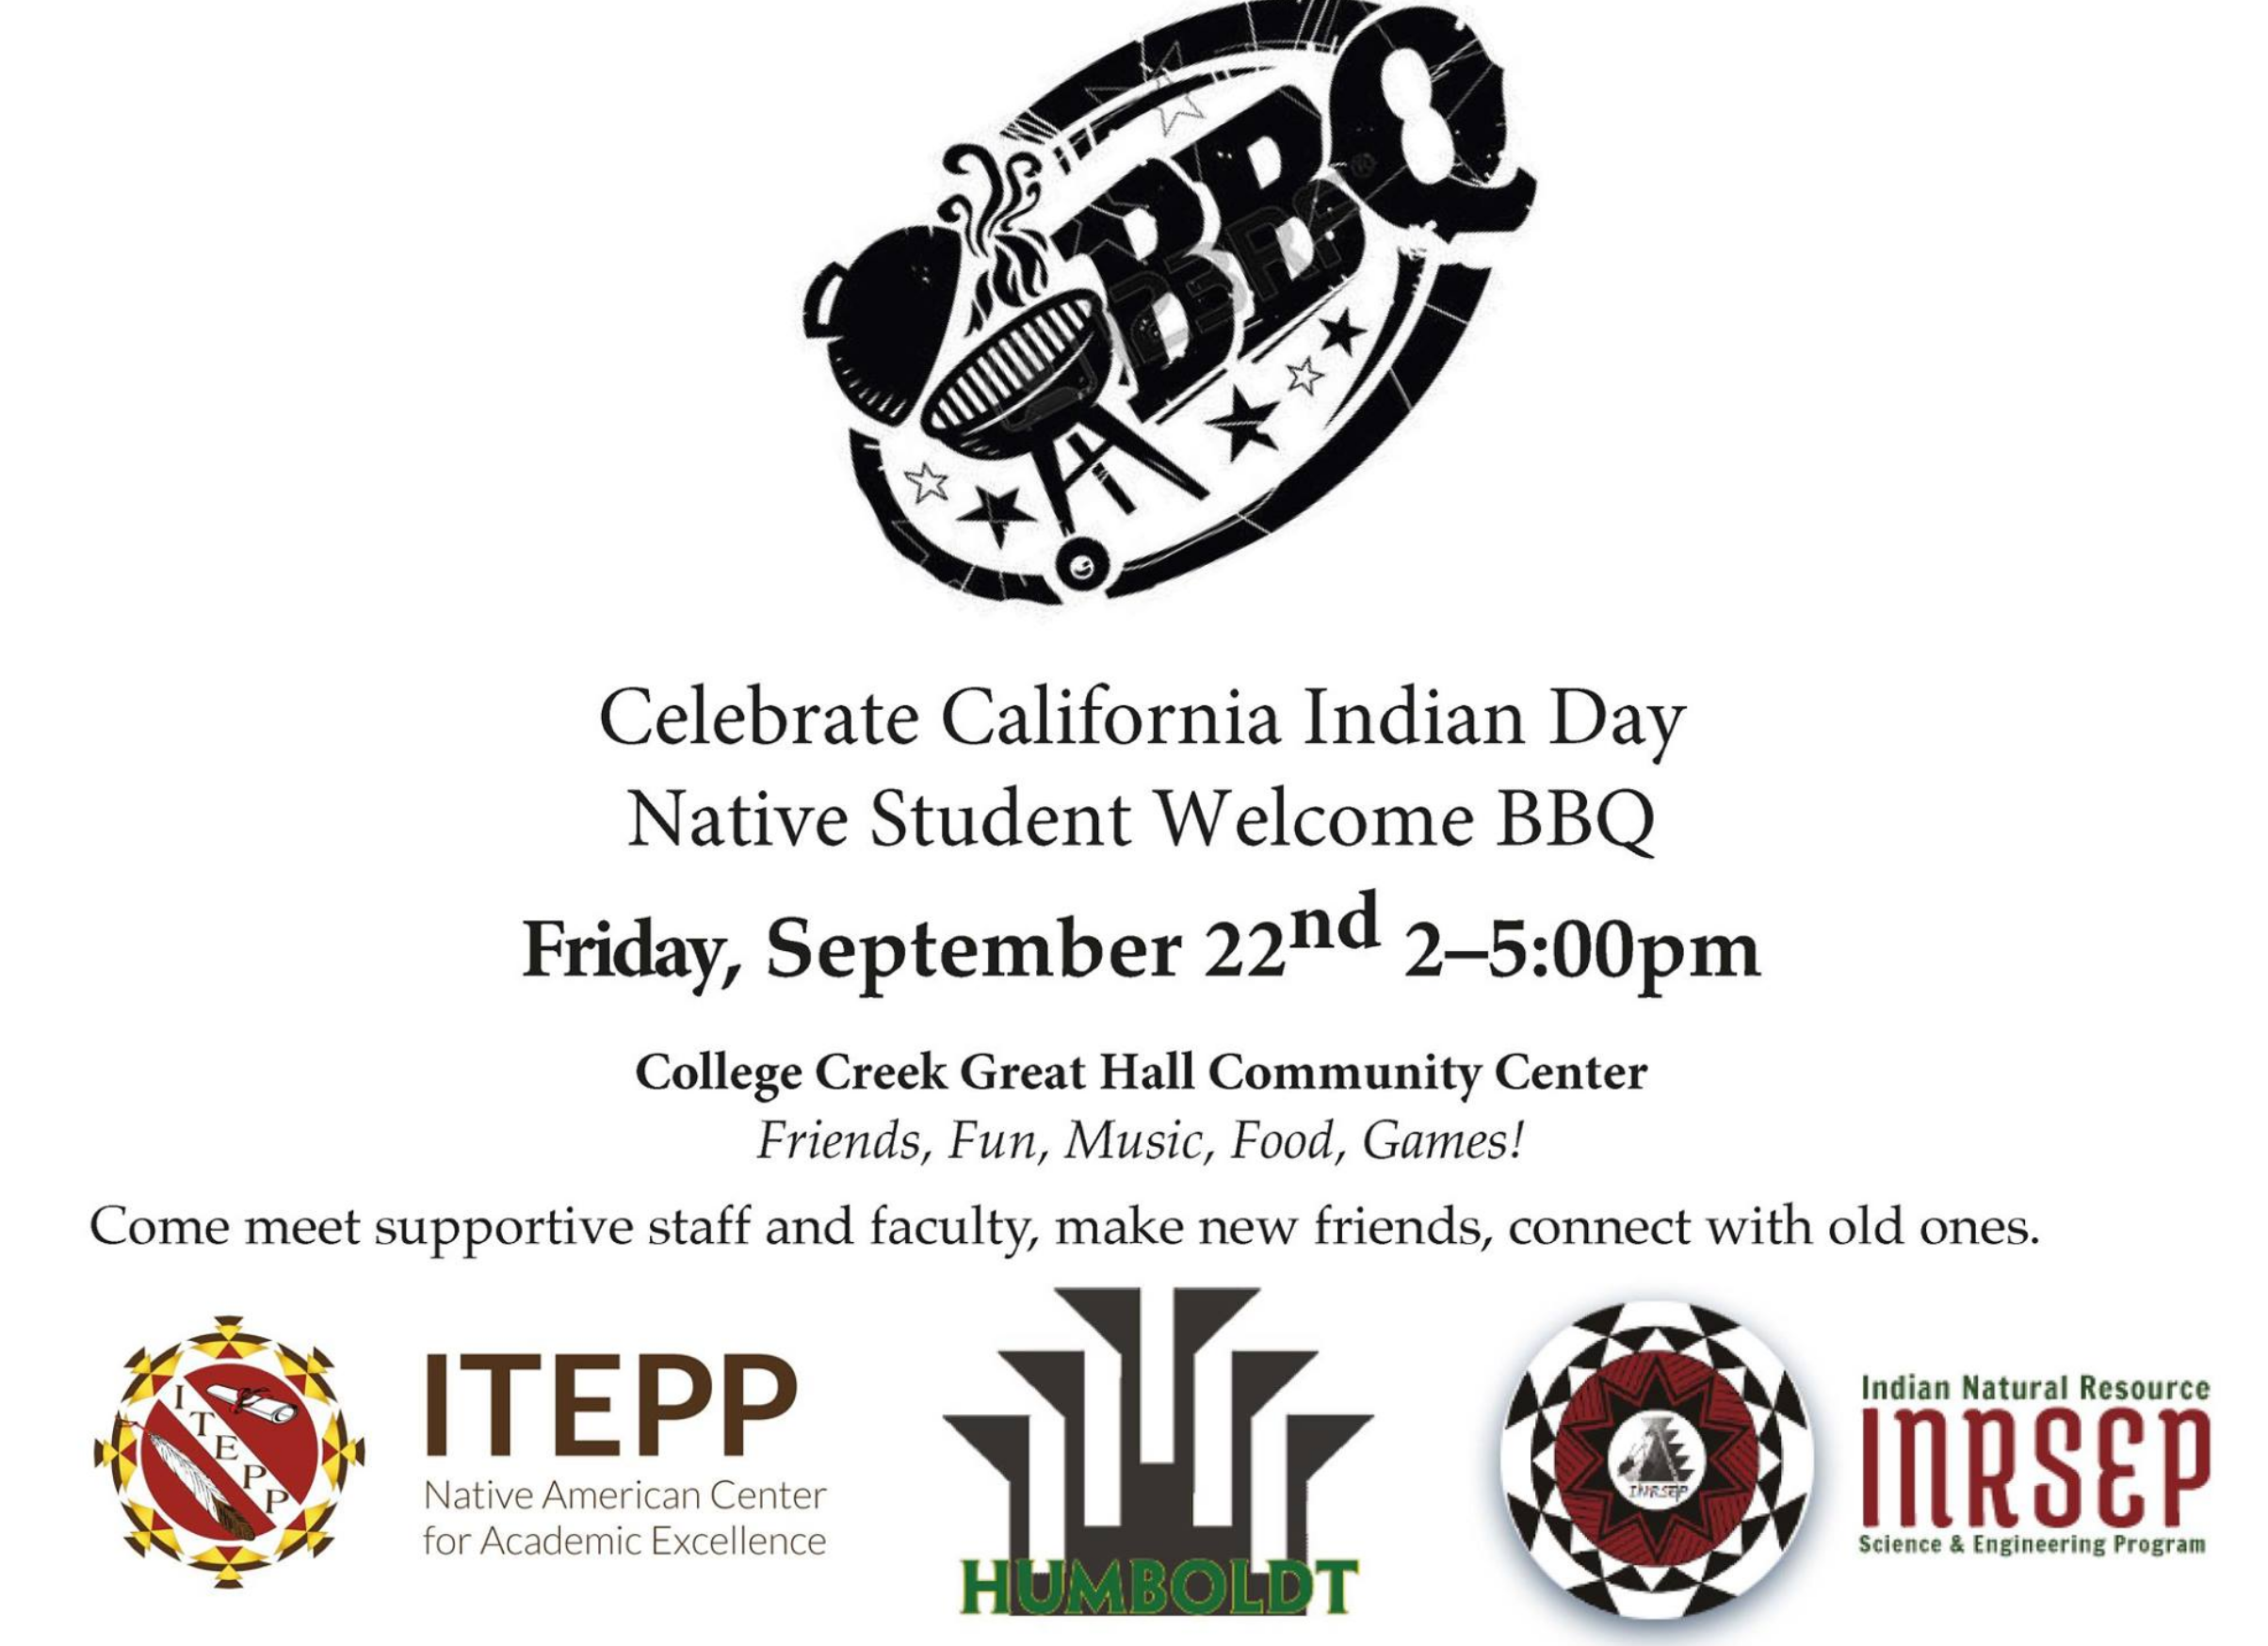 California Indian Day/Native Student Welcome BBQ | Native